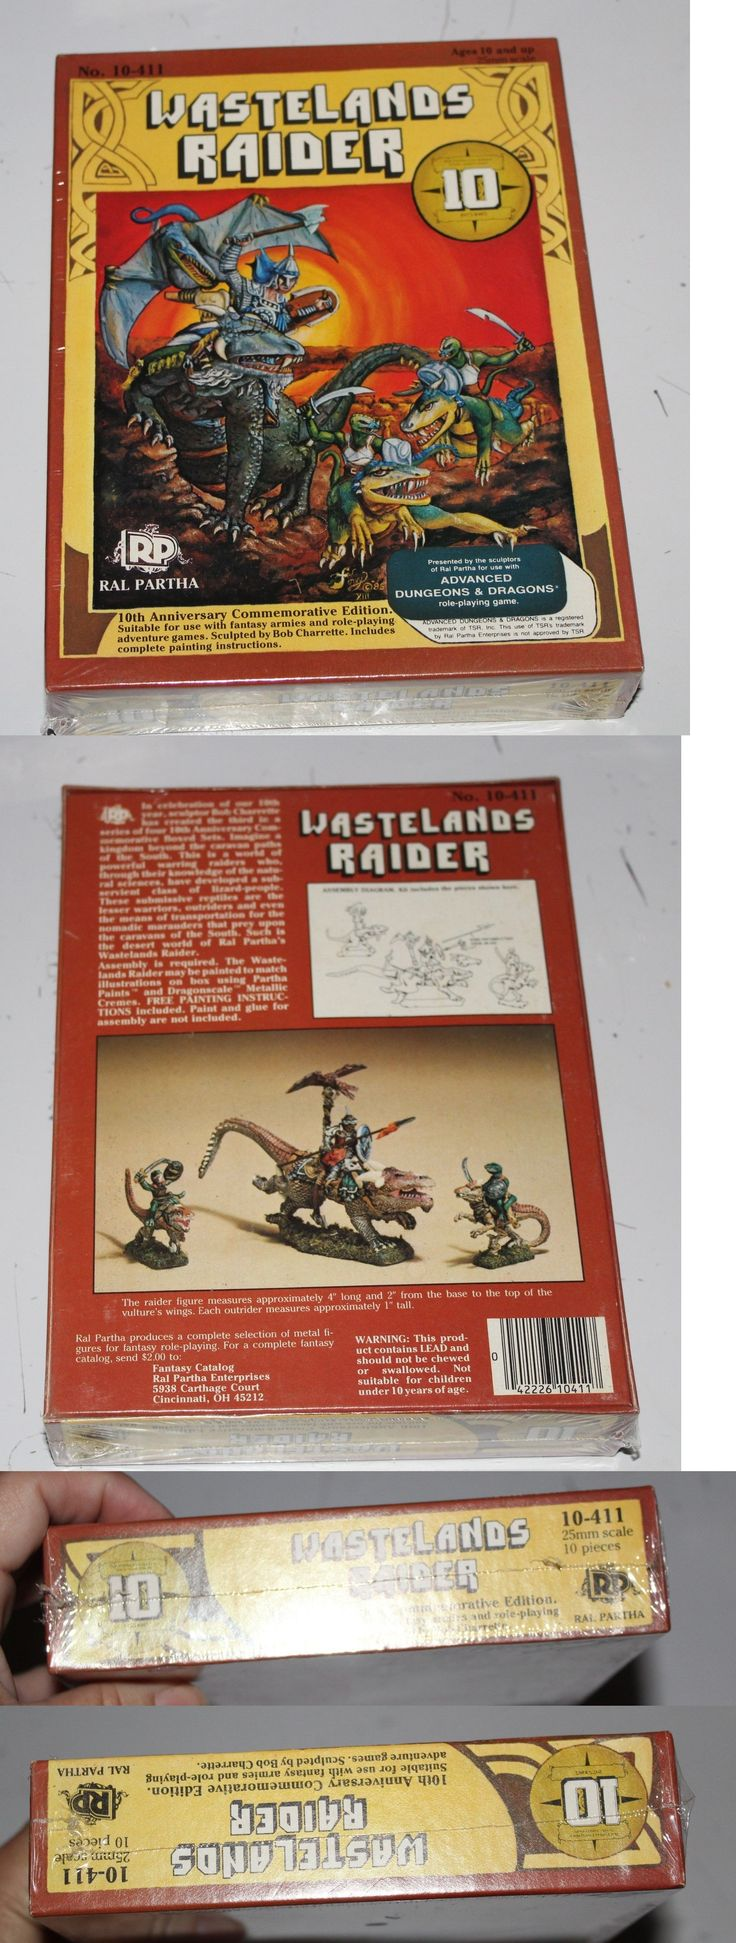 Ral Partha 16489: Wasteland Raider Ral Partha Adandd 10-411 Sealed Sculpture 25Mm Scale 10 Ann -> BUY IT NOW ONLY: $59.95 on eBay!